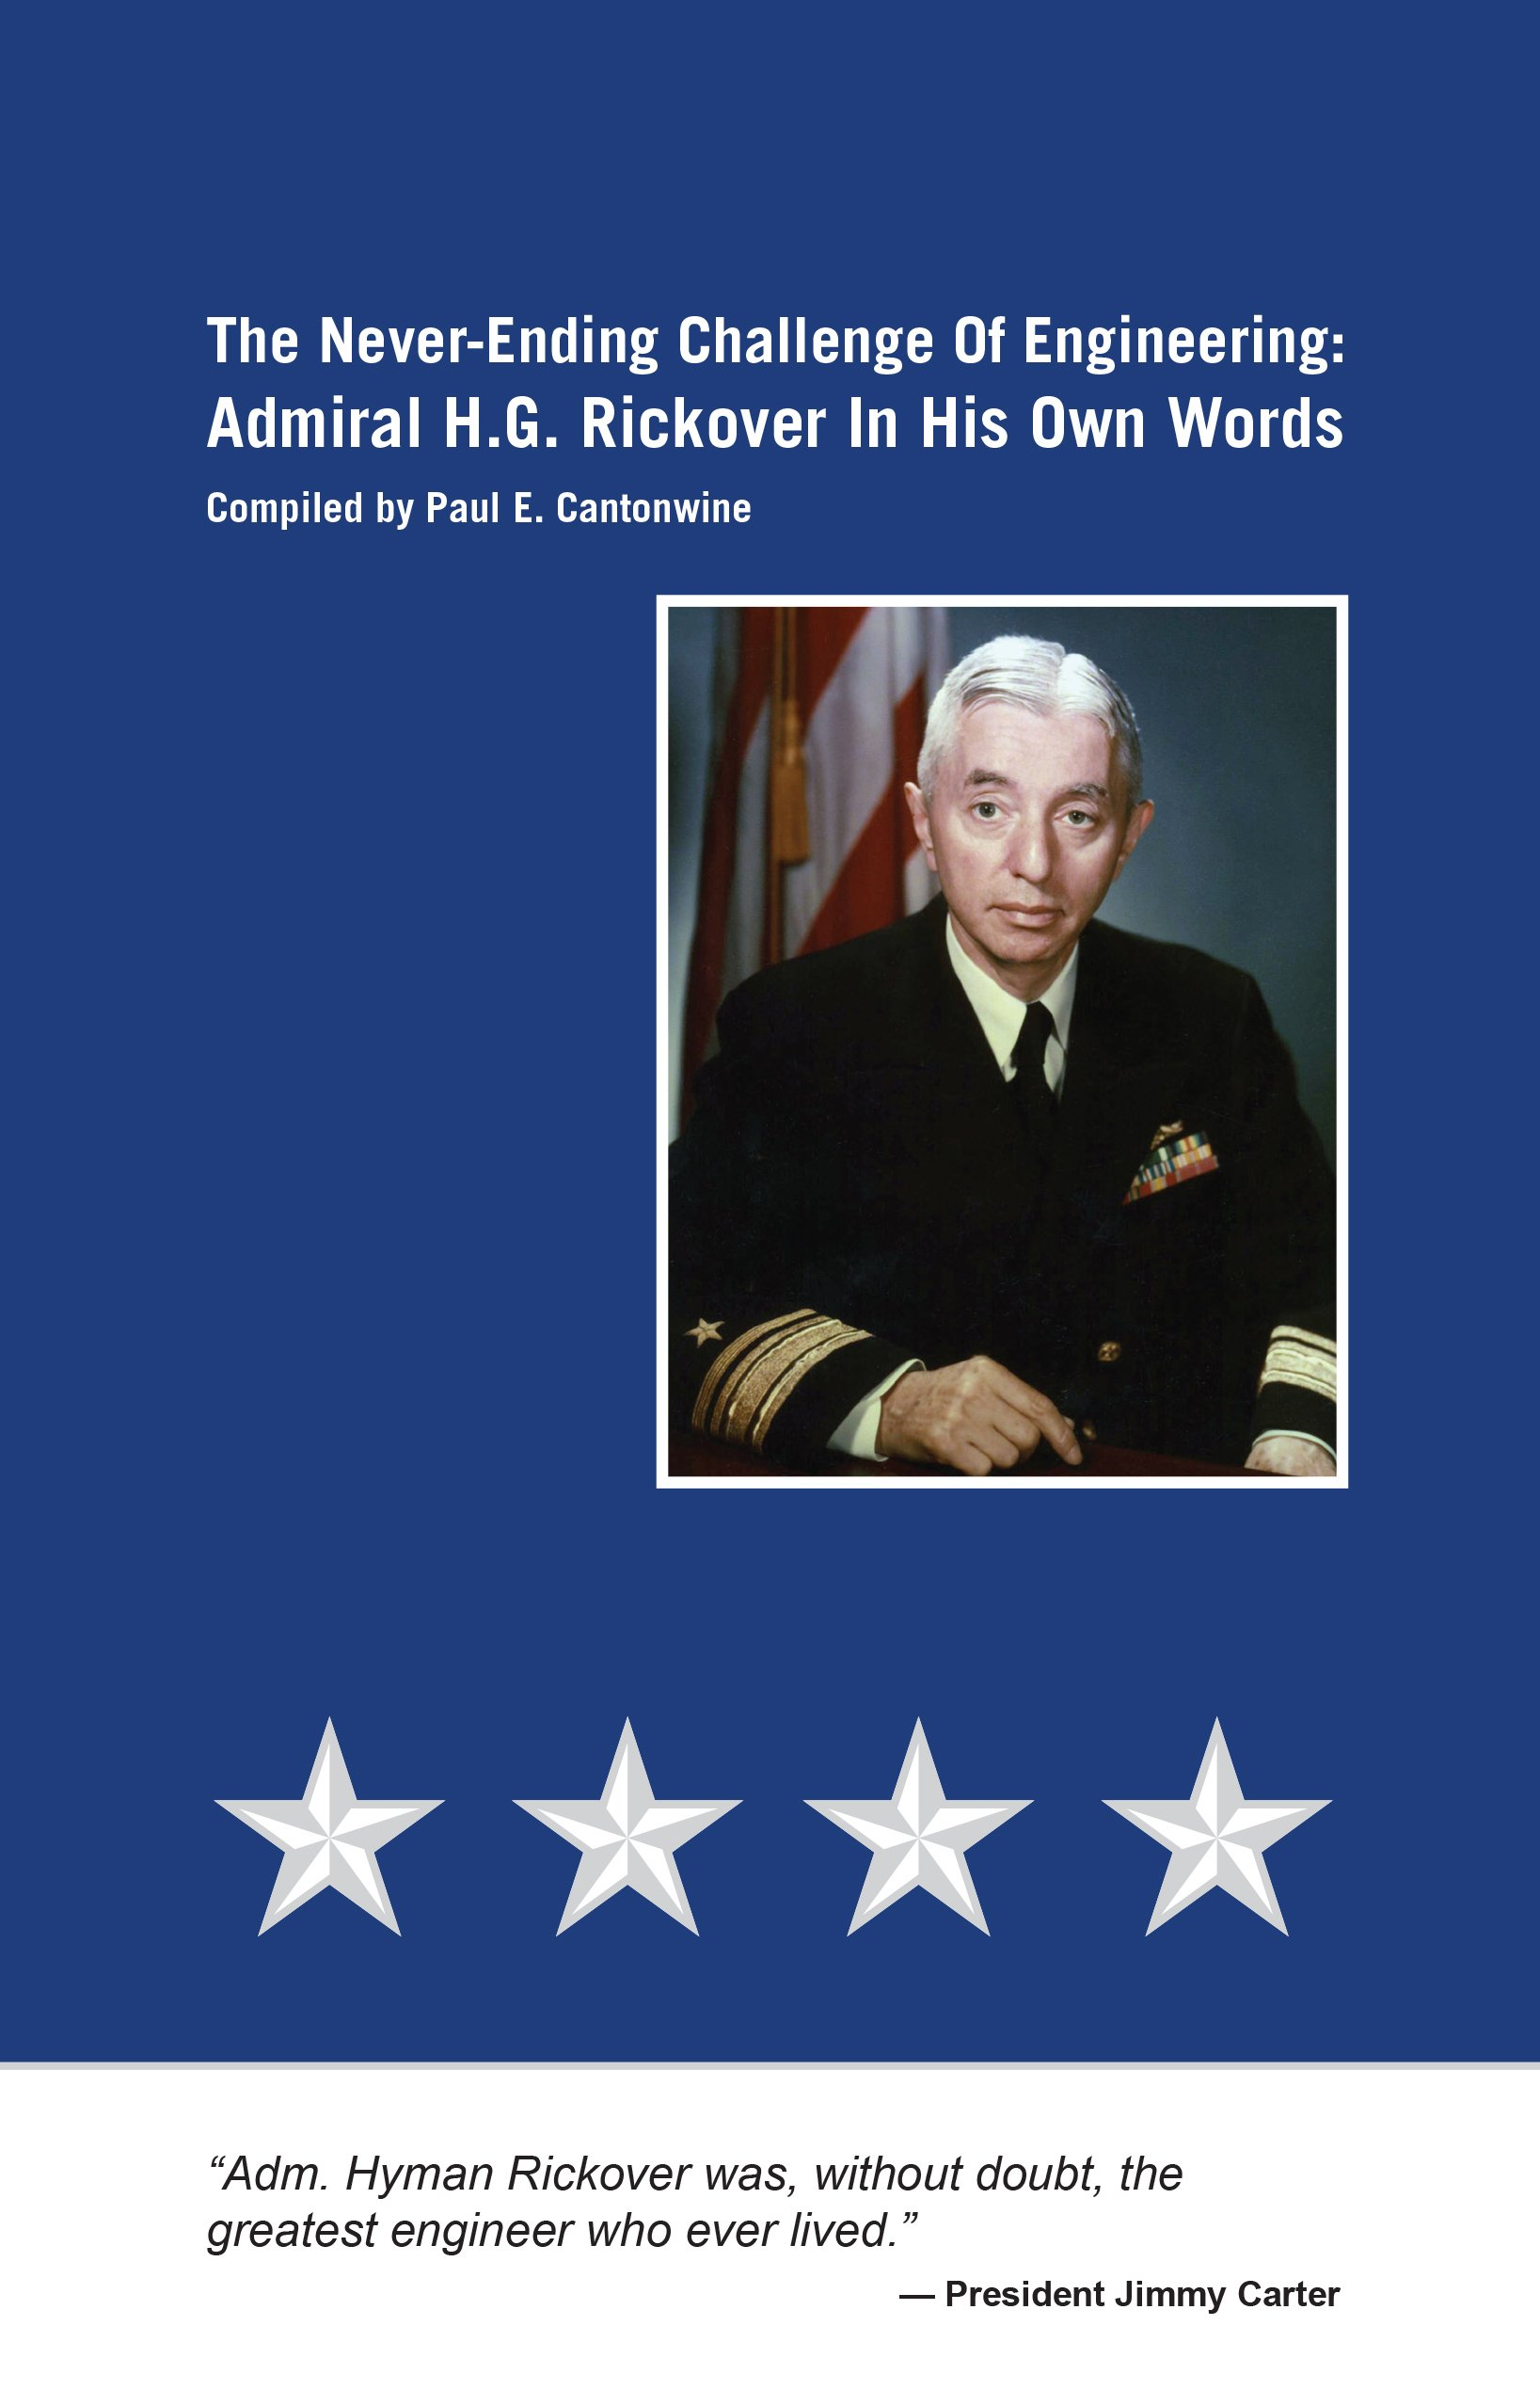 The never-ending challenge of engineering : Admiral H.G. Rickover in his own words